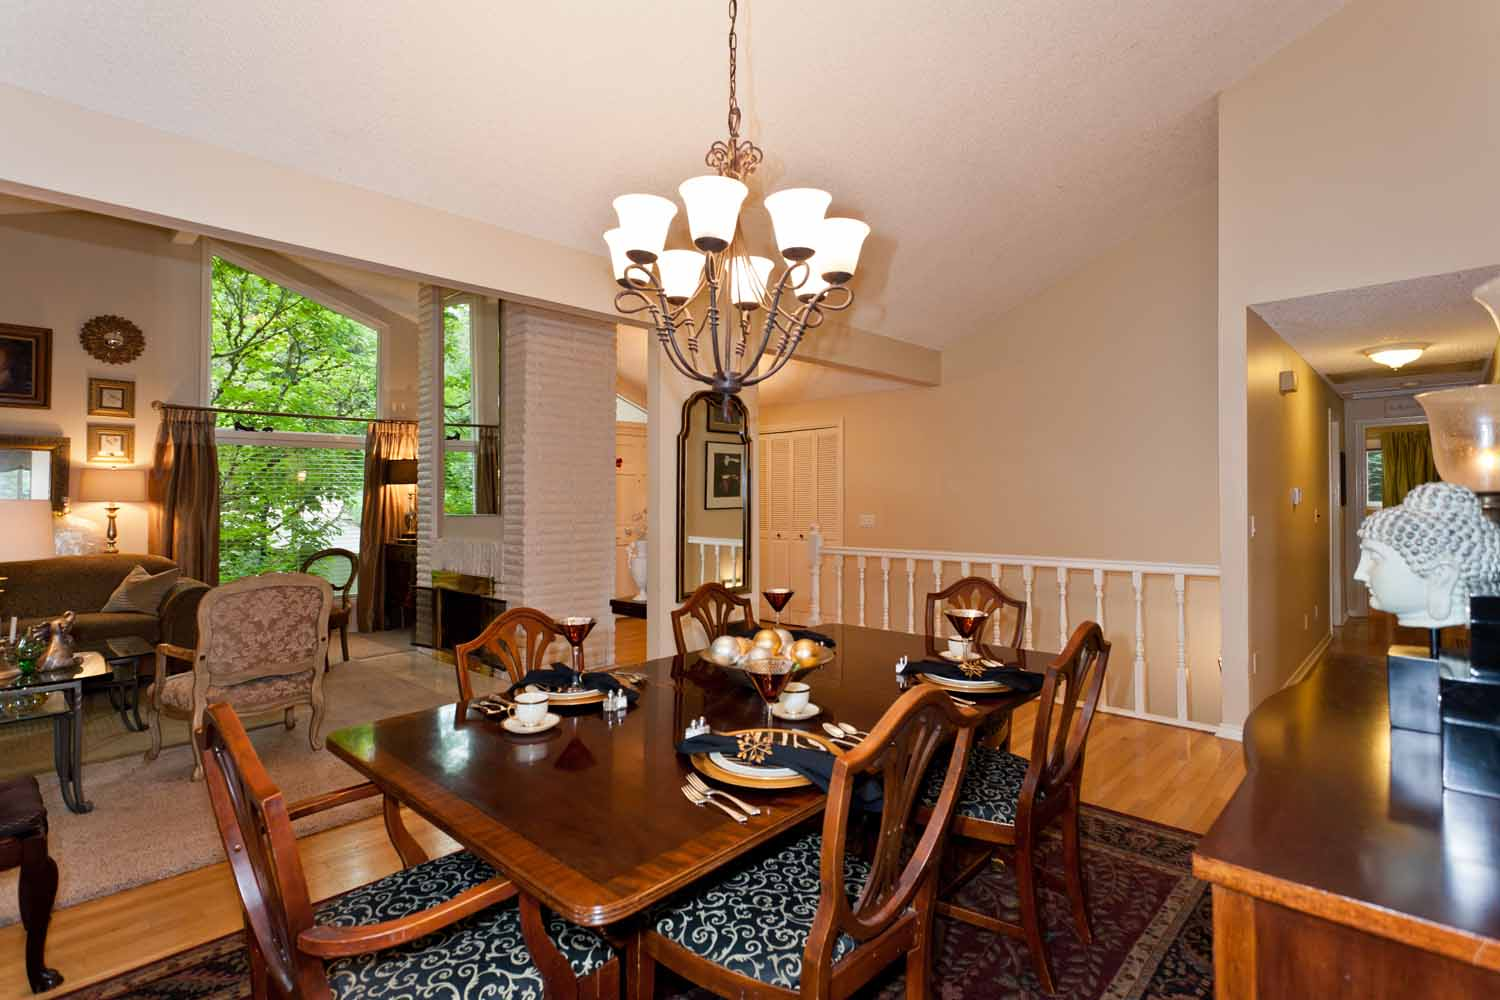 Donate Consign Oh My Pamela, Where Can I Donate My Dining Room Furniture